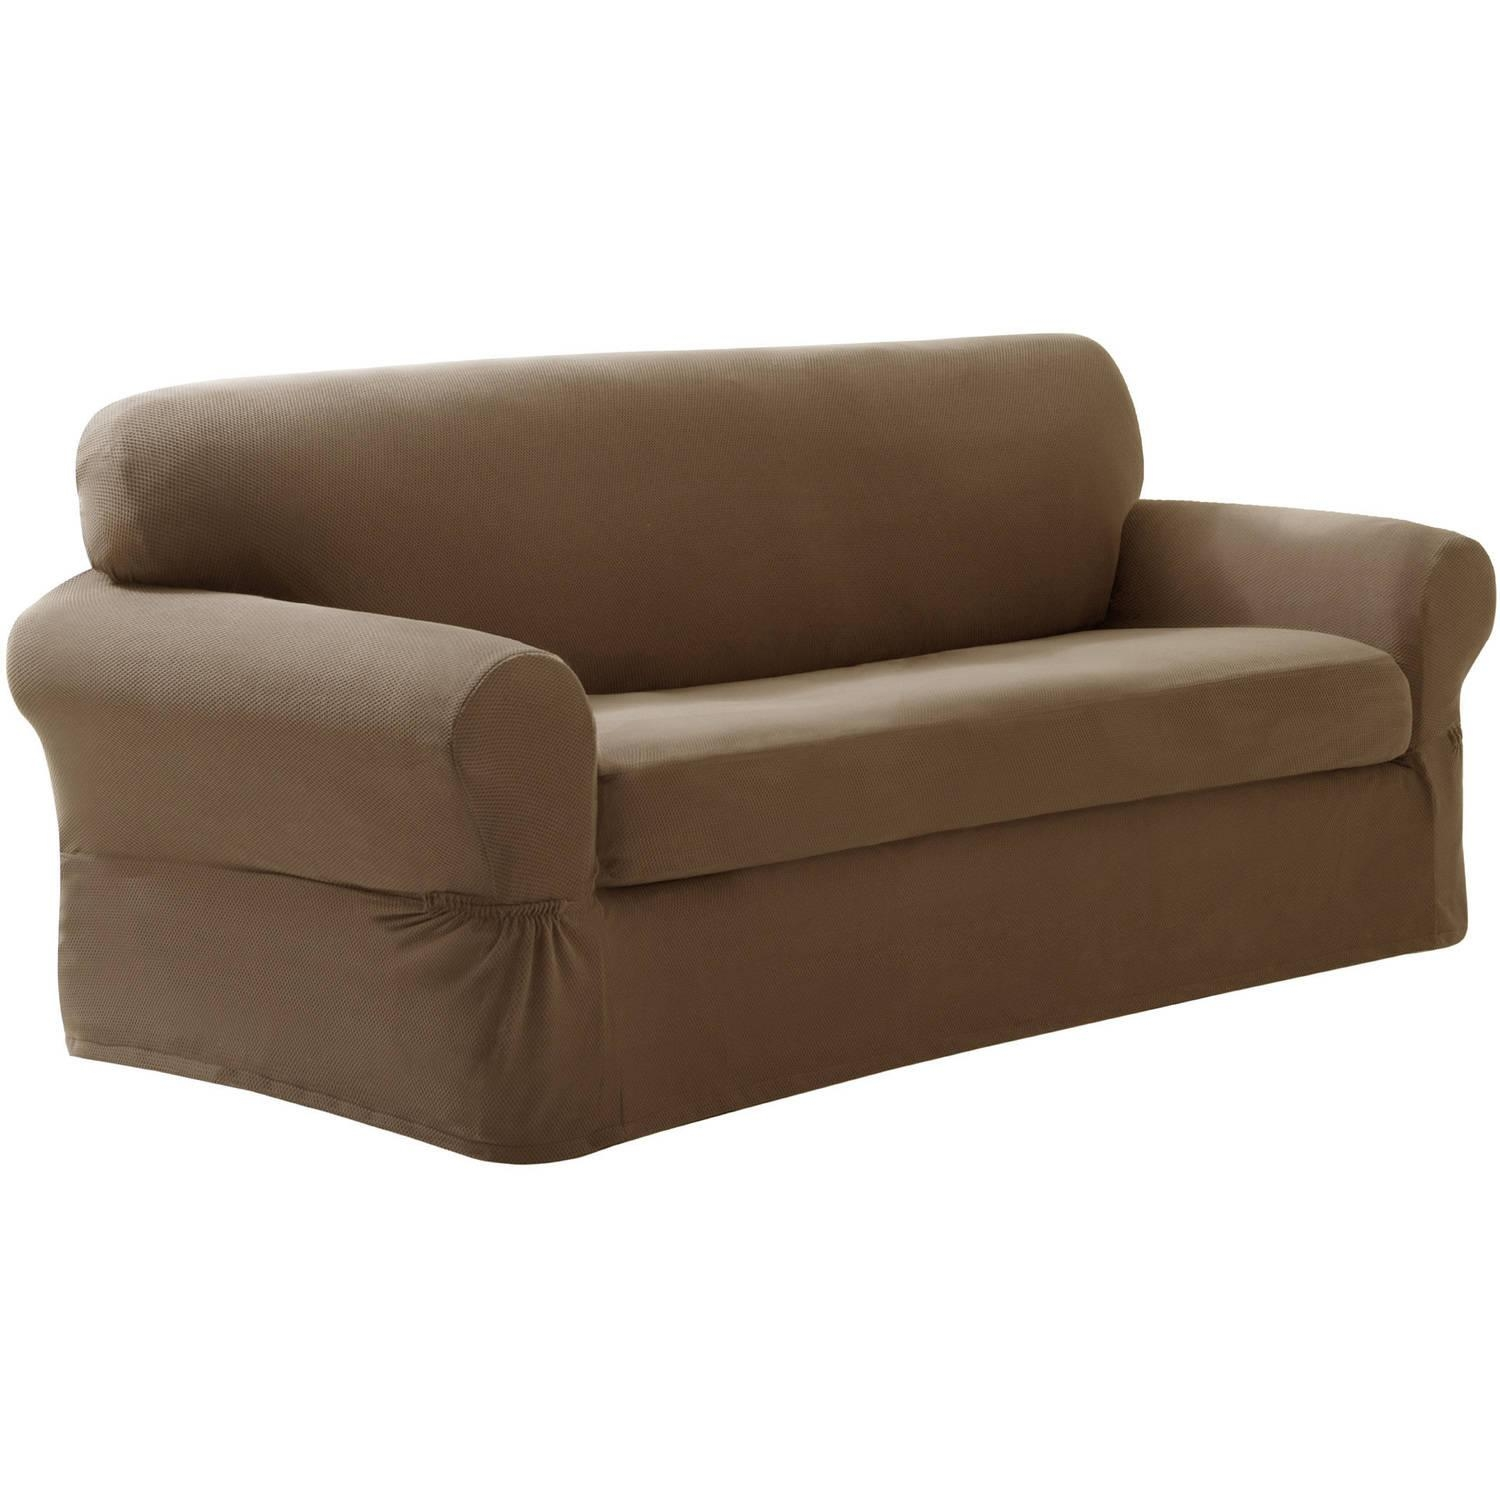 Furniture: Cool Stretch Sofa Covers To Protect And Renew Your Sofa Intended For Overstuffed Sofas And Chairs (Image 5 of 20)